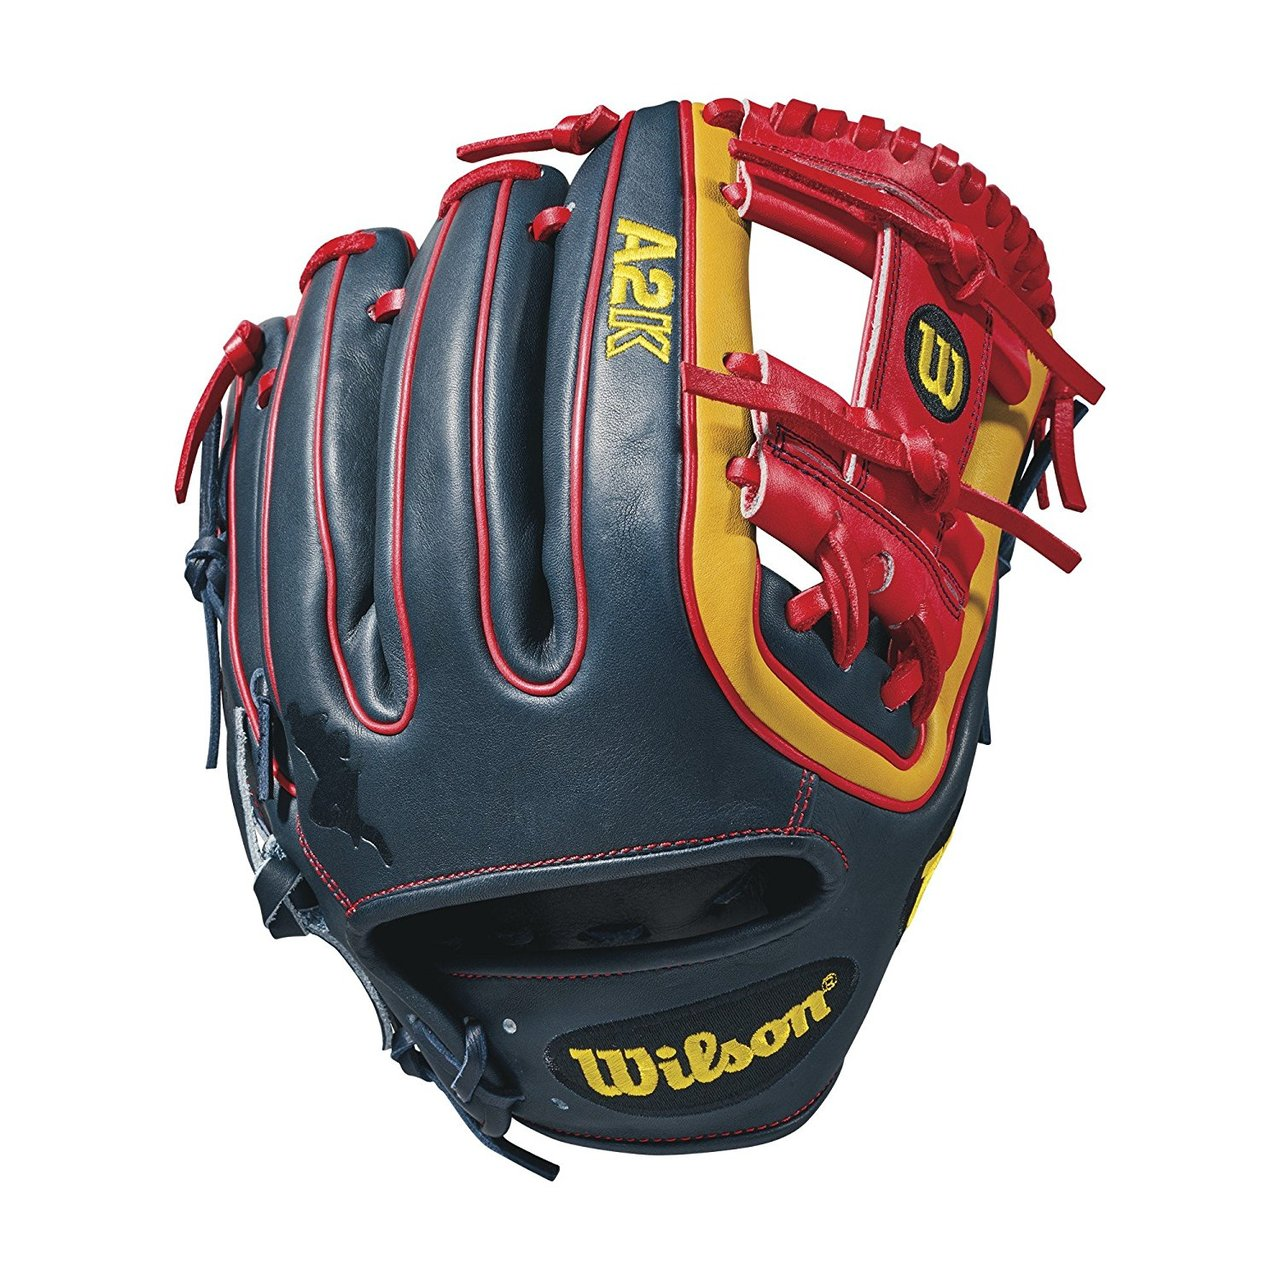 wilson-2018-a2k-datdude-gm-baseball-glove-right-hand-throw-11-5-inch WTA2KRB18DTDUDE-RightHandThrow Wilson 887768614461 For Brandon Phillips and his 2018 A2K® DATDUDE GM this season